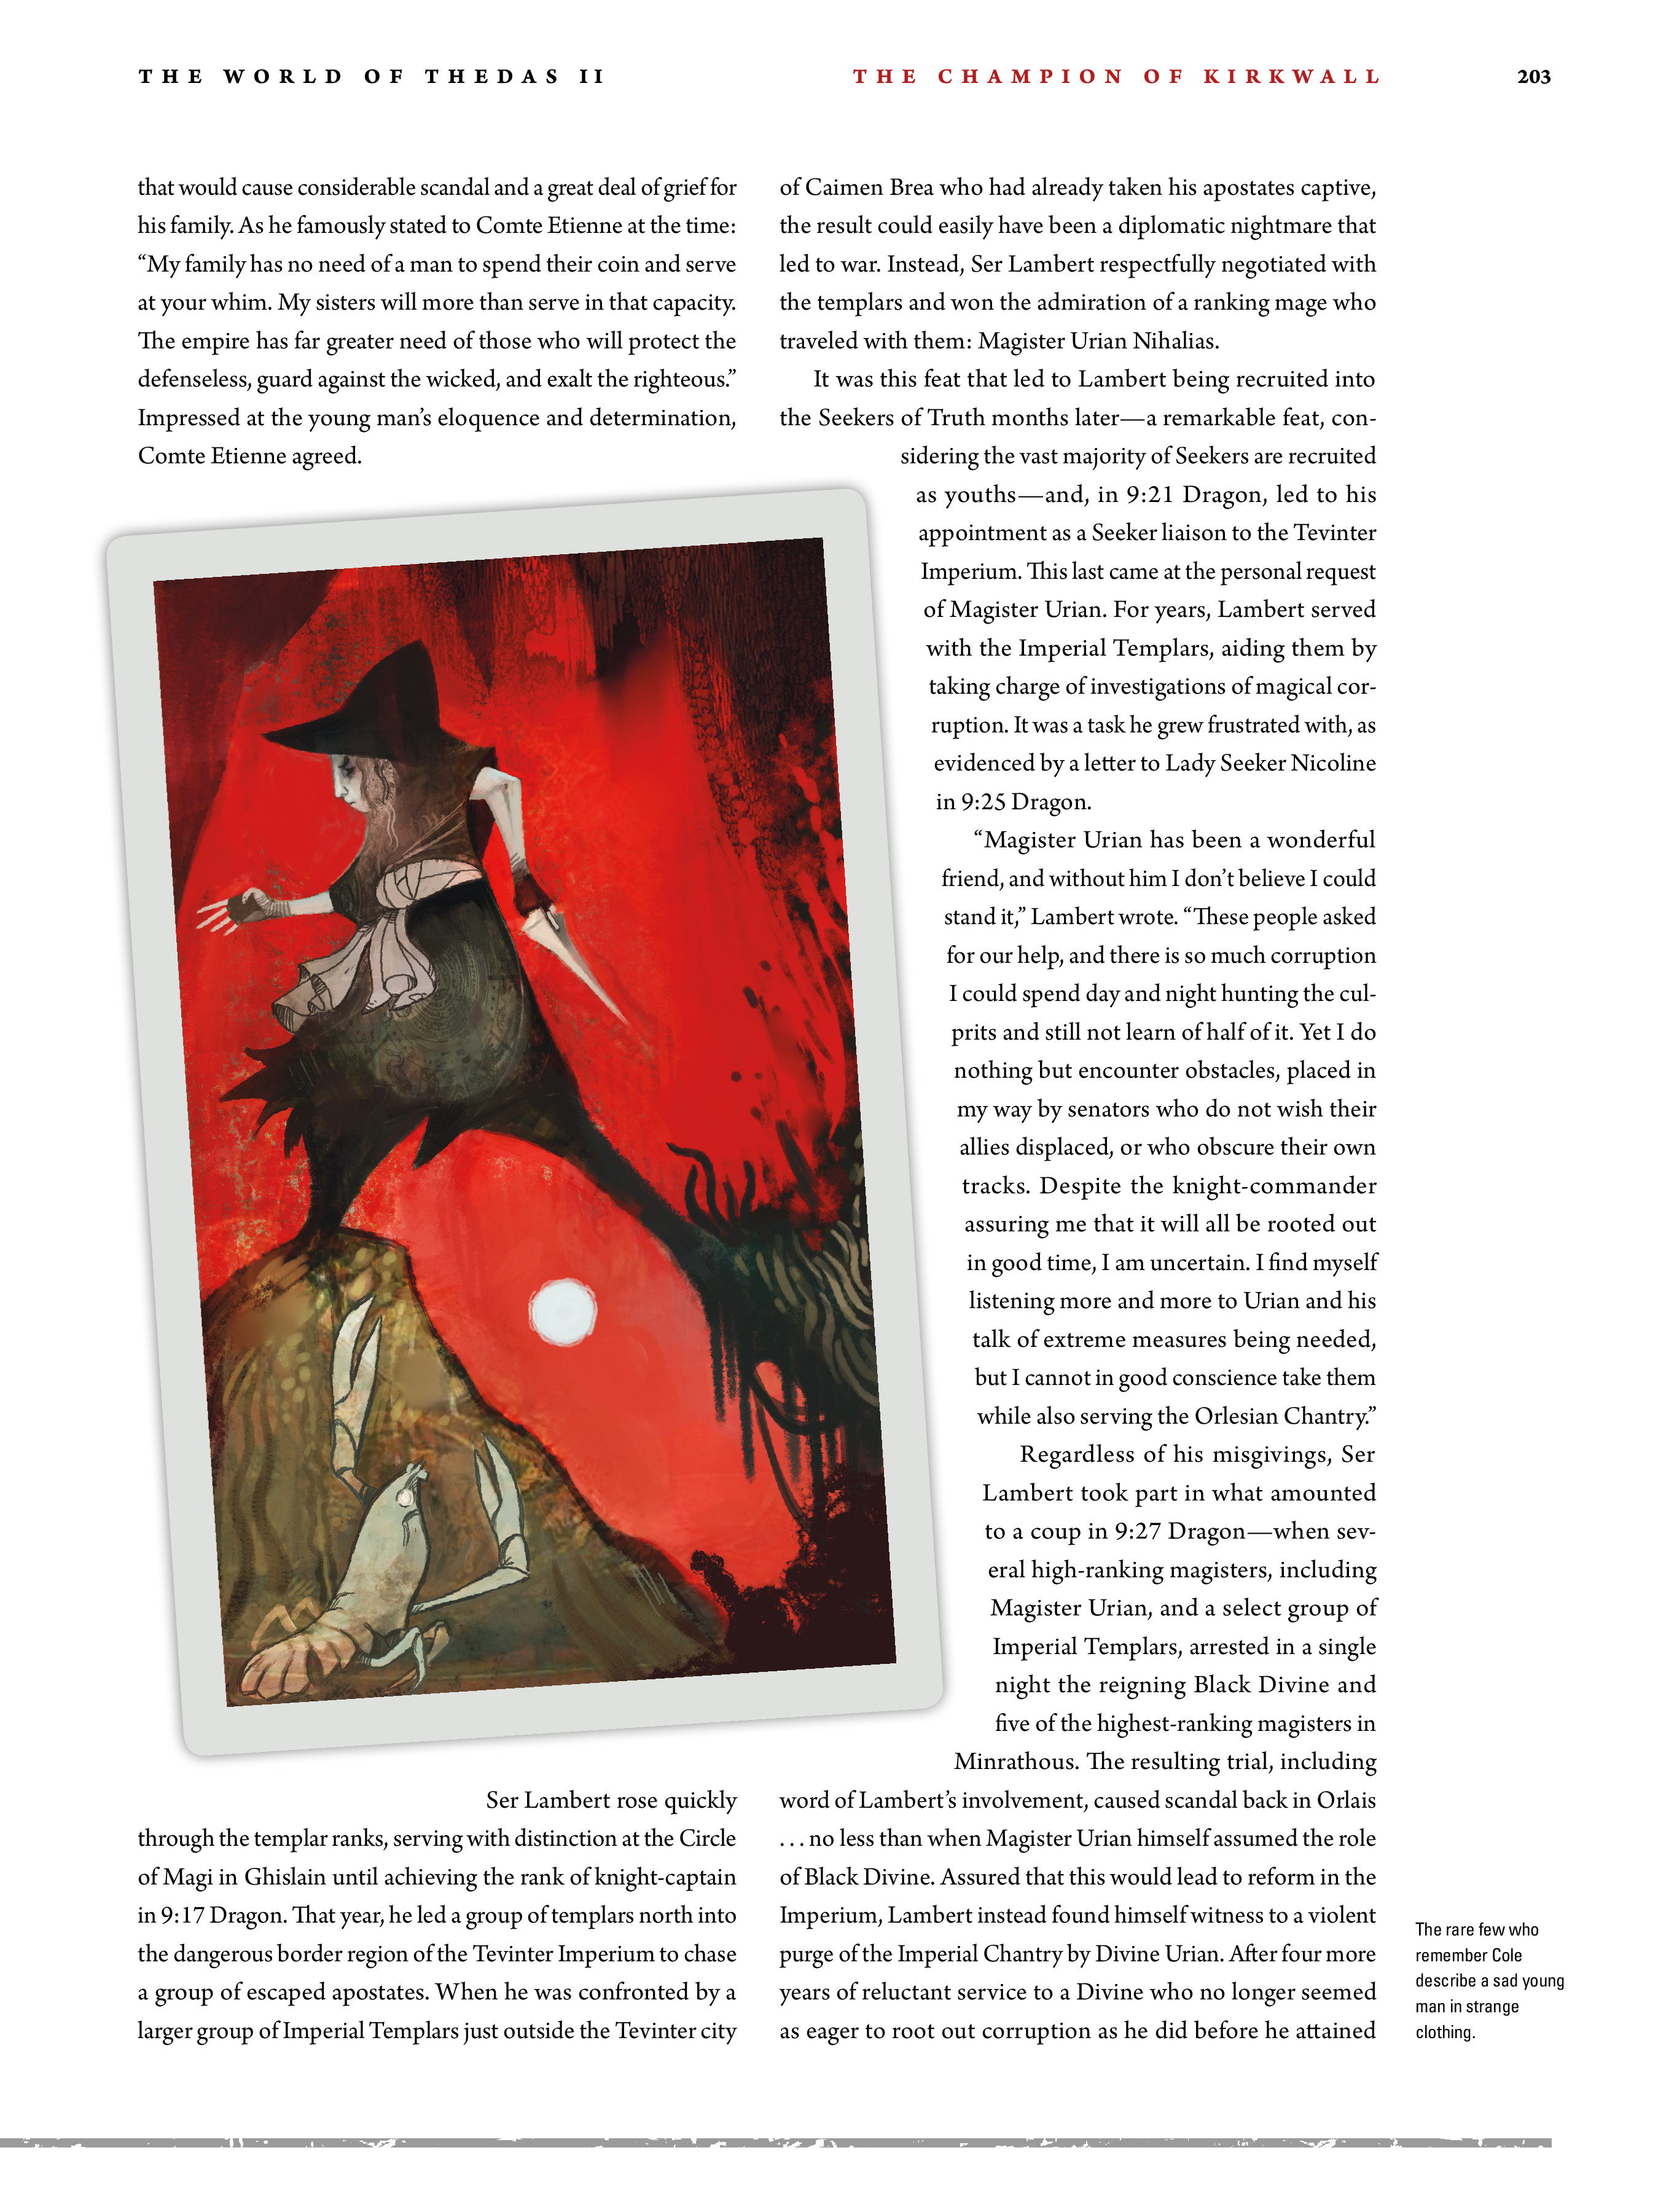 Read online Dragon Age: The World of Thedas comic -  Issue # TPB 2 - 198